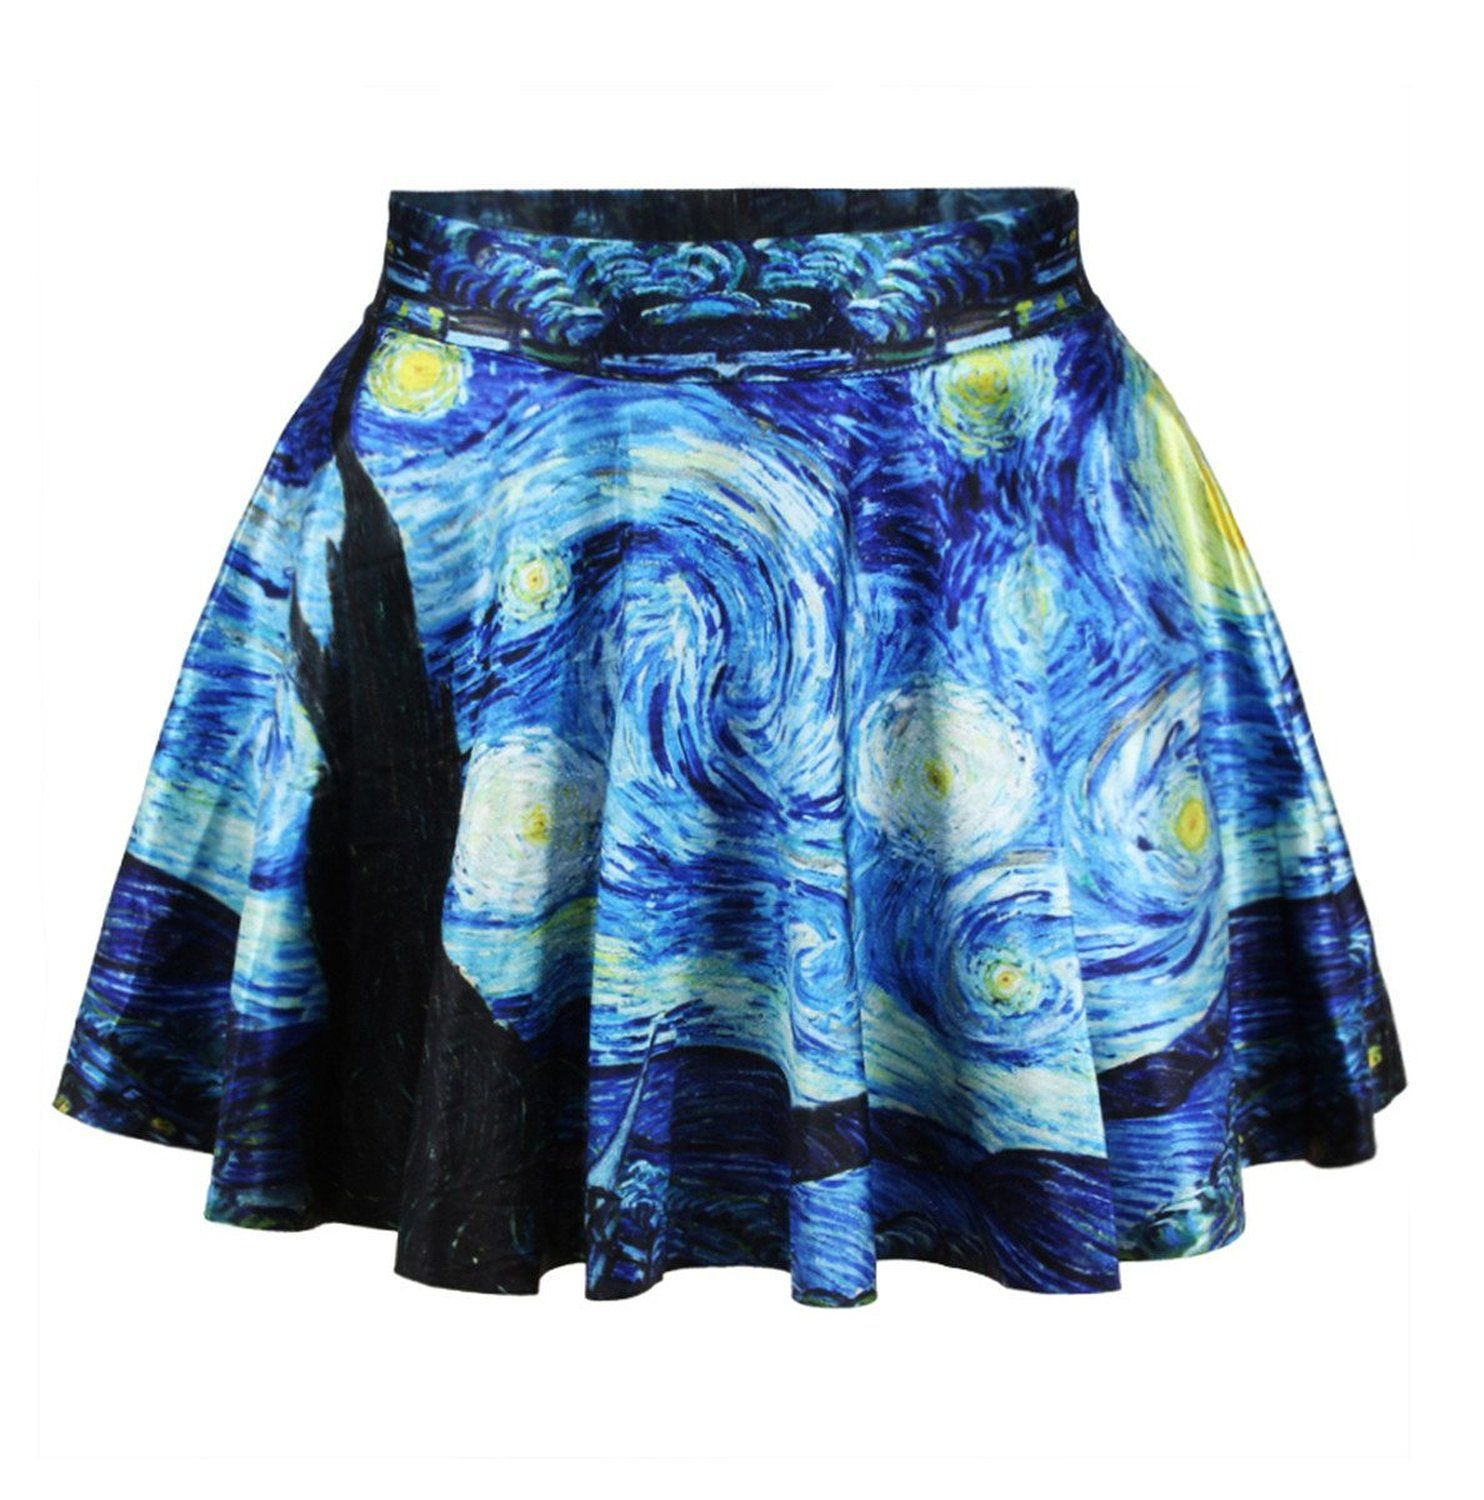 Amazon.com: Ninimour- Sexy Retro Vintage Digital Print Skater Skirt (Starry Night): Clothing